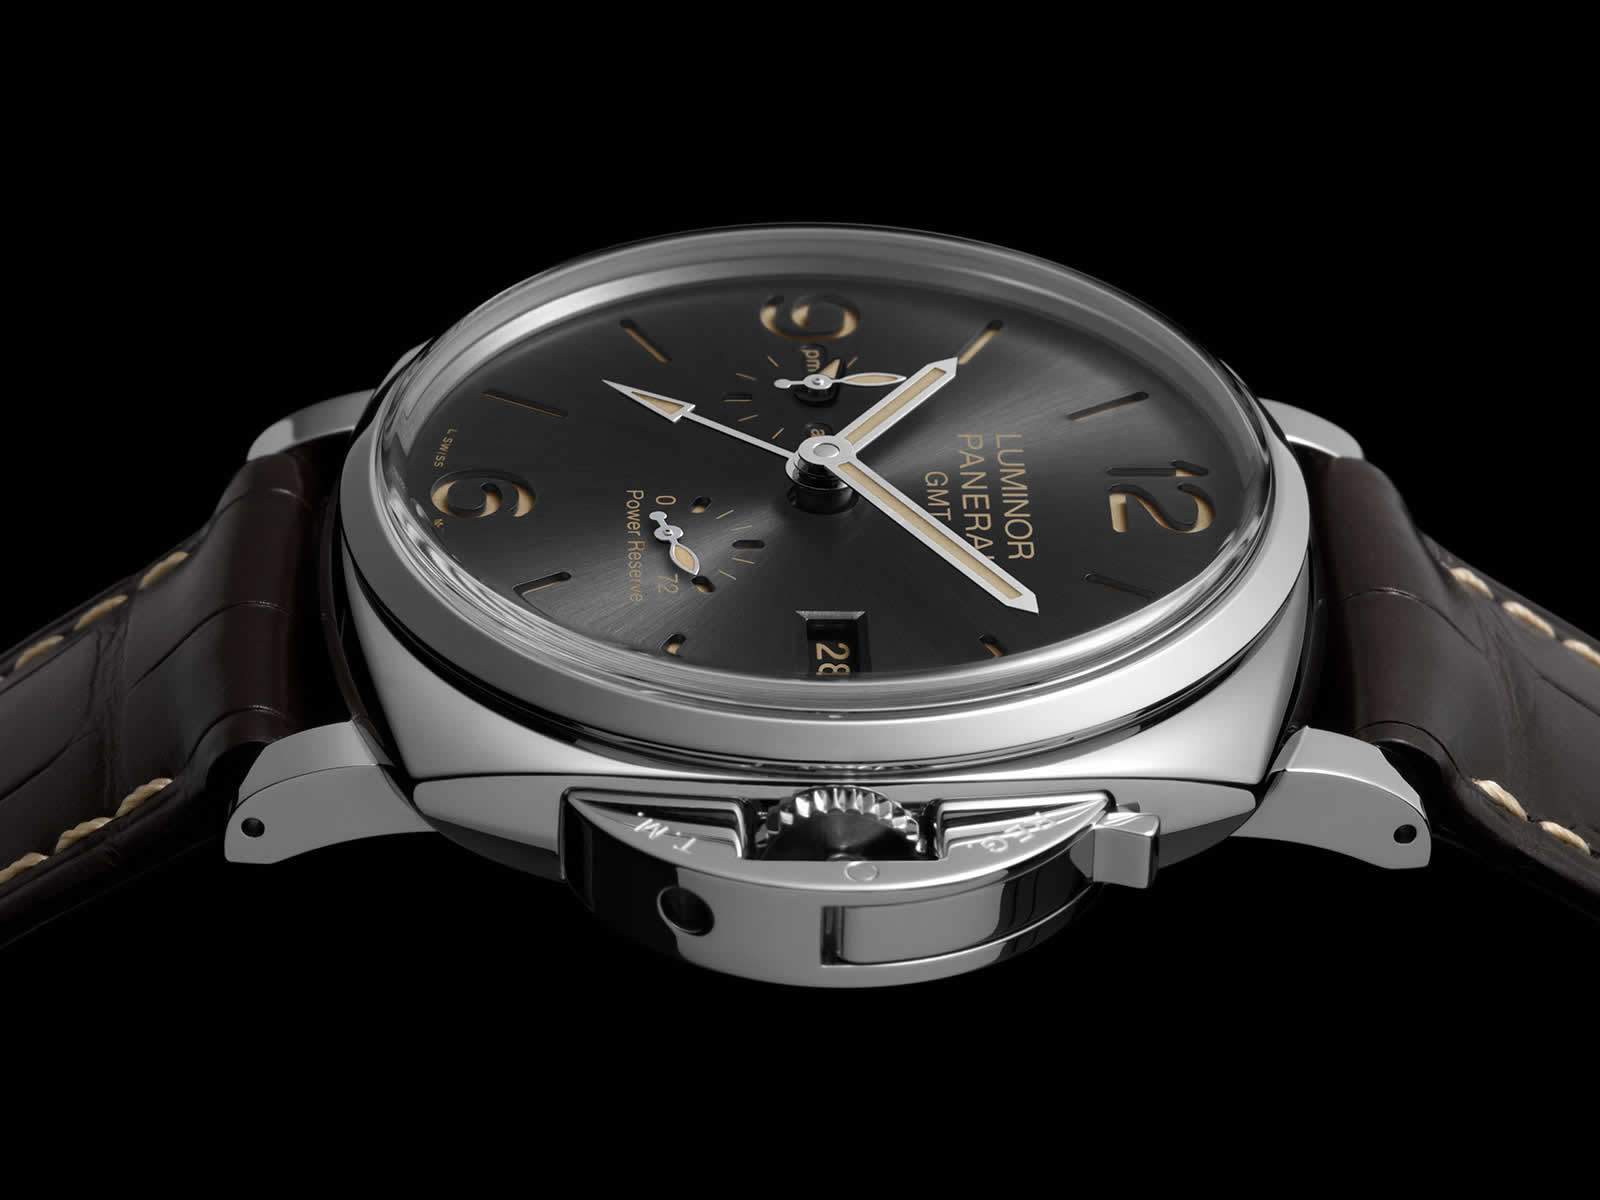 Panerai-Luminor-Due-3-Days-Gmt-Power-Reserve-Automatic-Pam00944-Sihh-2018-1.jpg